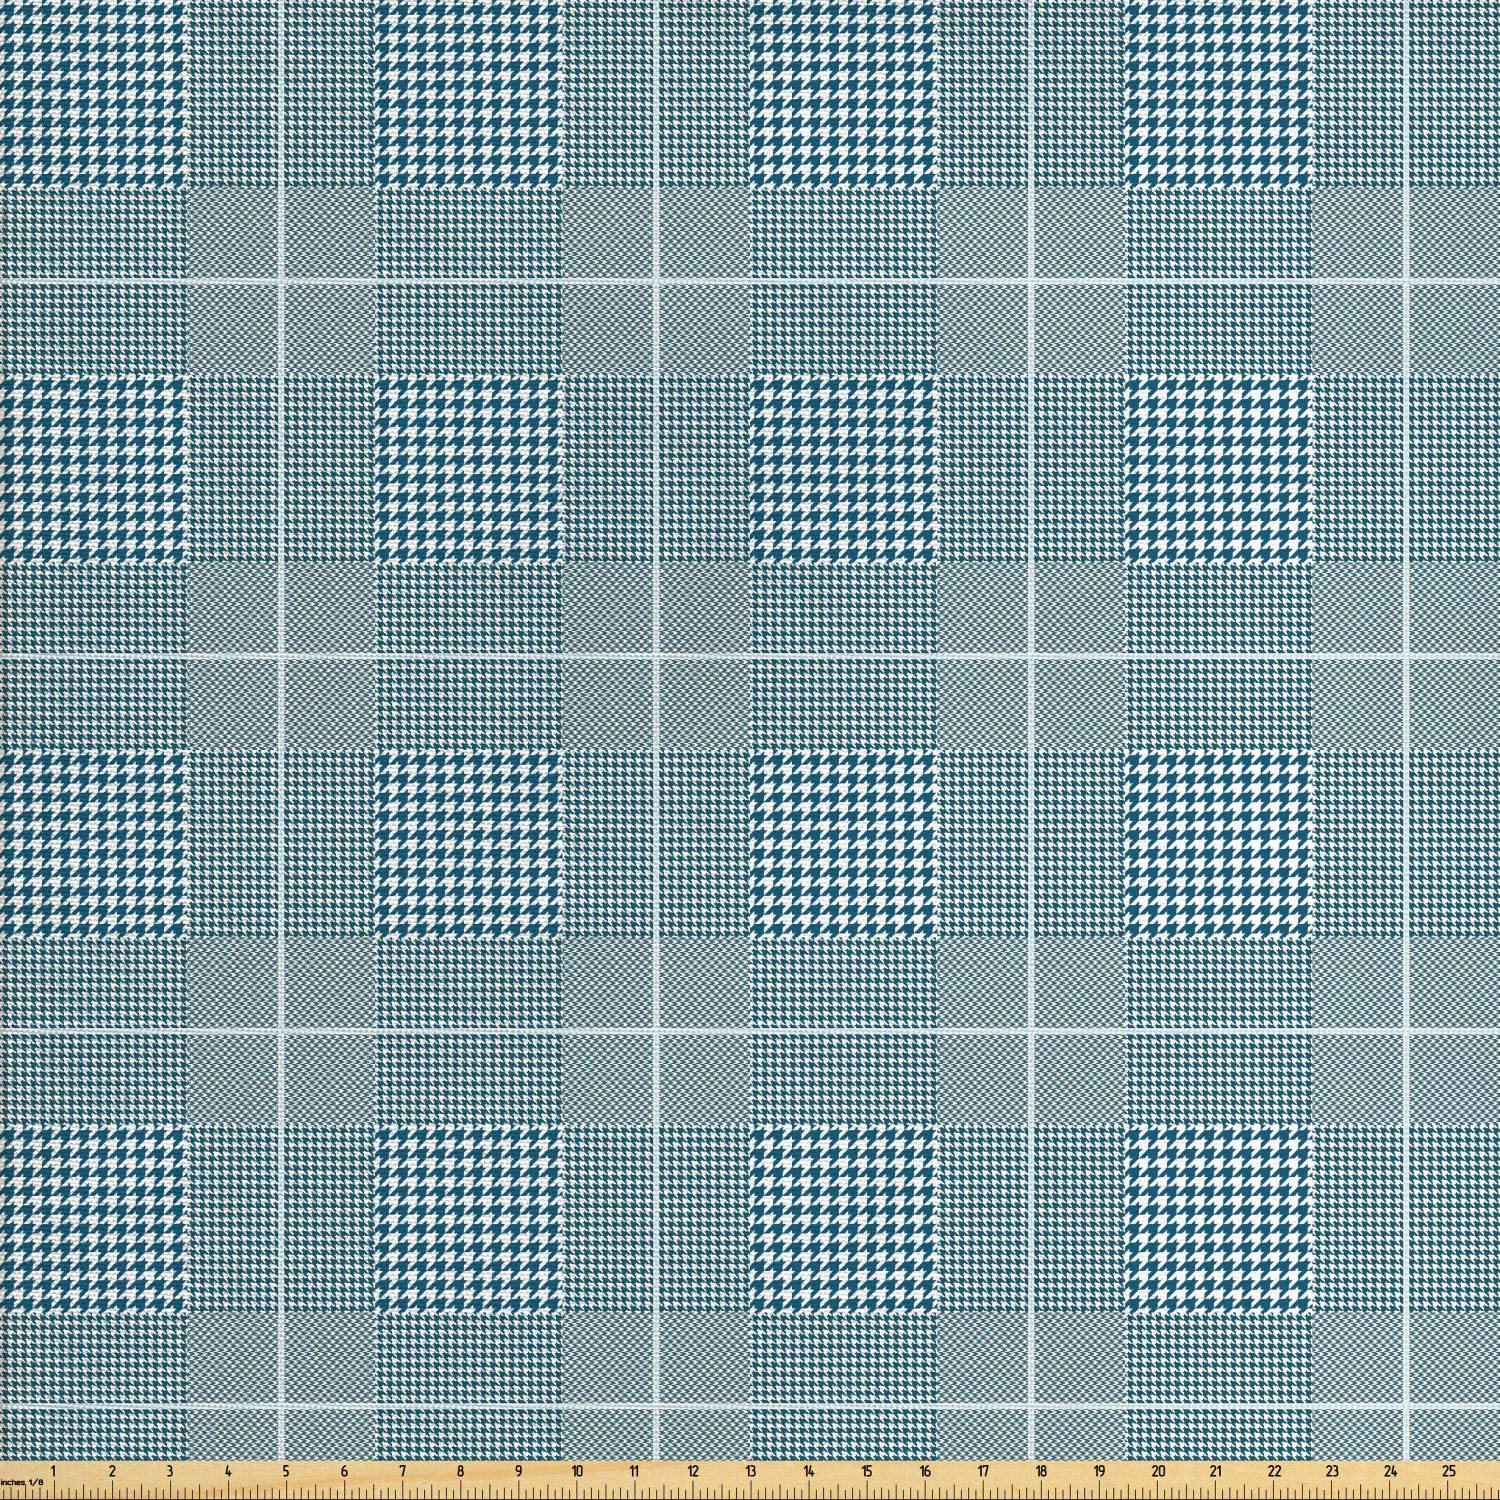 Ambesonne Geometric Fabric by The Yard, Monochrome Plaid Pattern with Classic Houndstooth Squares Check Print, Decorative Fabric for Upholstery and Home Accents, 1 Yard, Petrol Blue and White